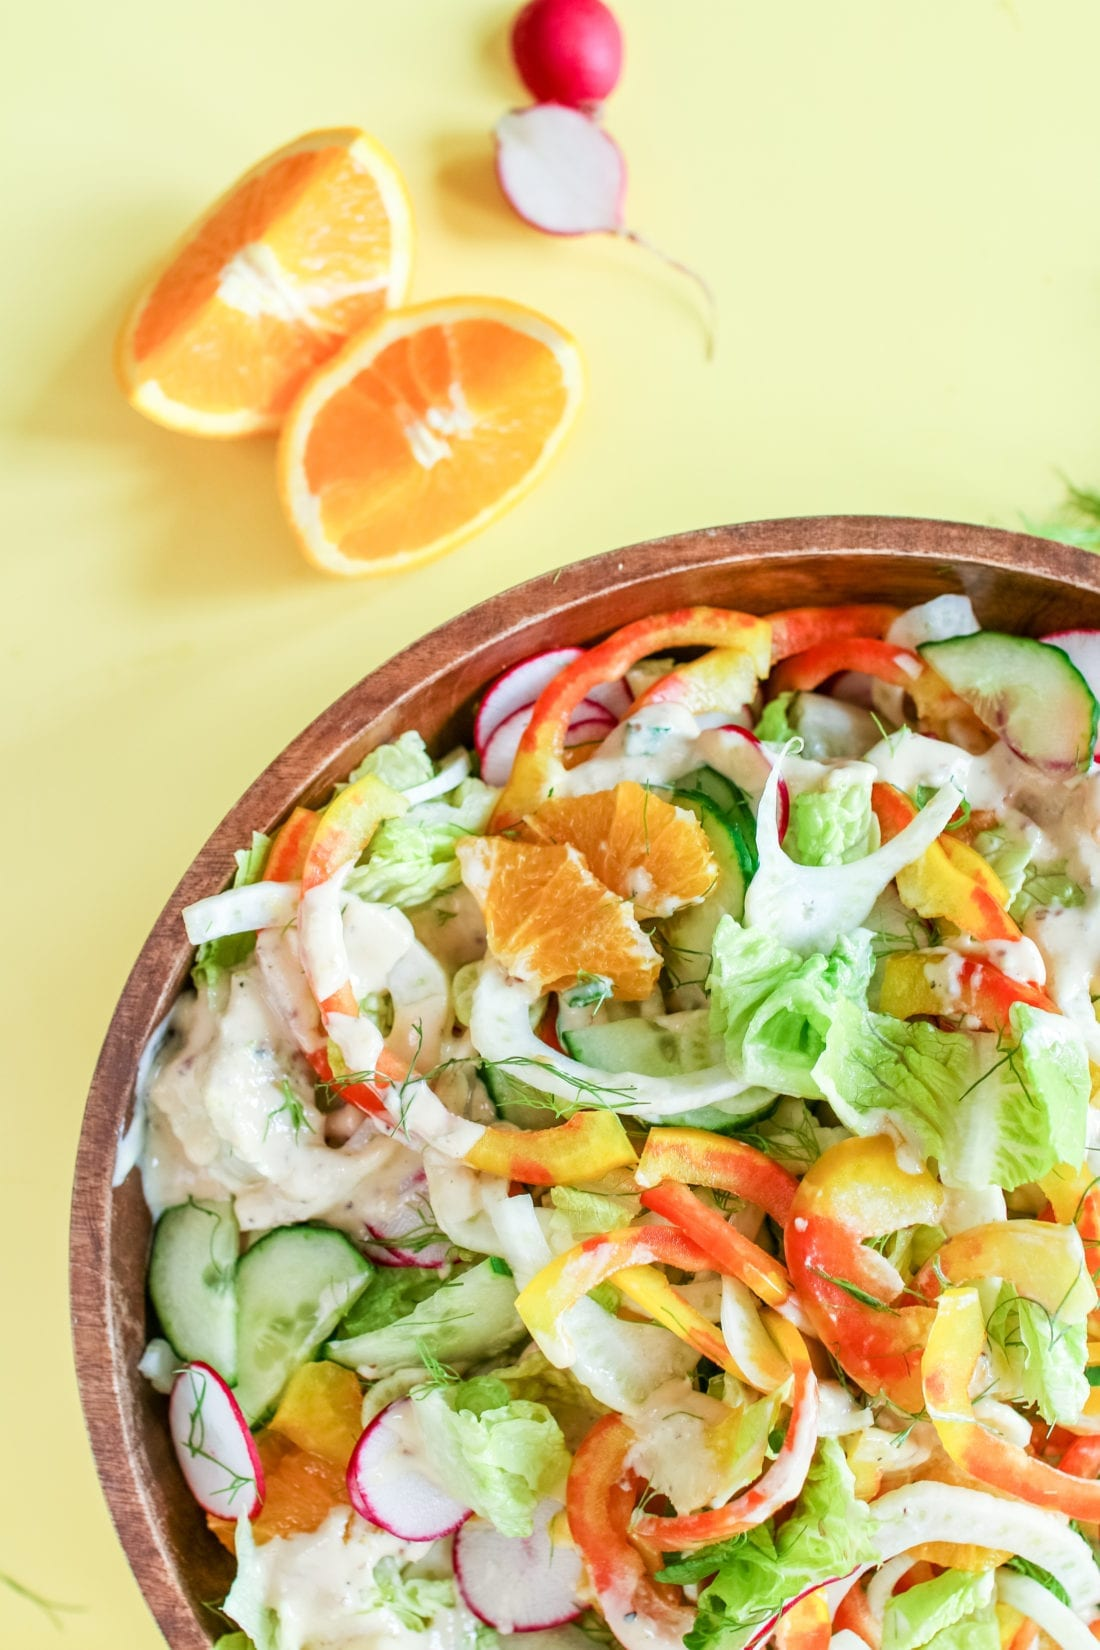 This Citrus Fennel Spring Salad with a creamy Orange Tahini dressing is packed full of fresh seasonal ingredients like crispy romaine, crunchy peppers and fennel - the ultimate spring and summertime salad.